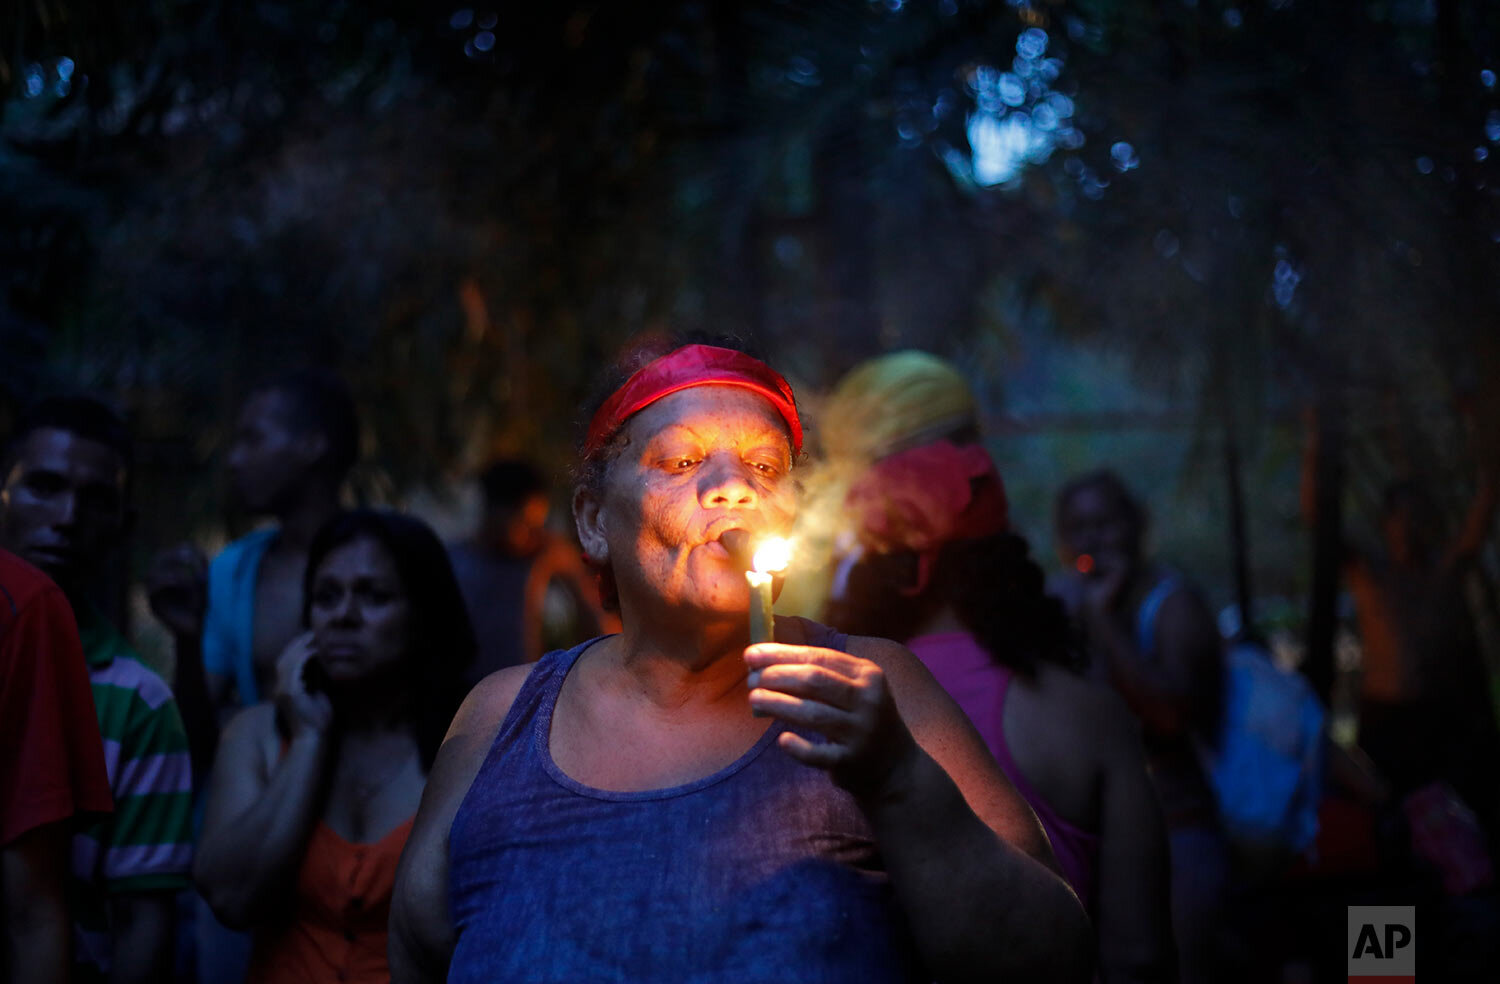 In this photo taken Oct. 11, 2019, a woman lights a cigar at the entrance of Sorte mountain to ask for permission to perform spiritual rituals where followers of indigenous goddess Maria Lionza gather annually in Venezuela's Yaracuy state. (AP Photo/Ariana Cubillos)